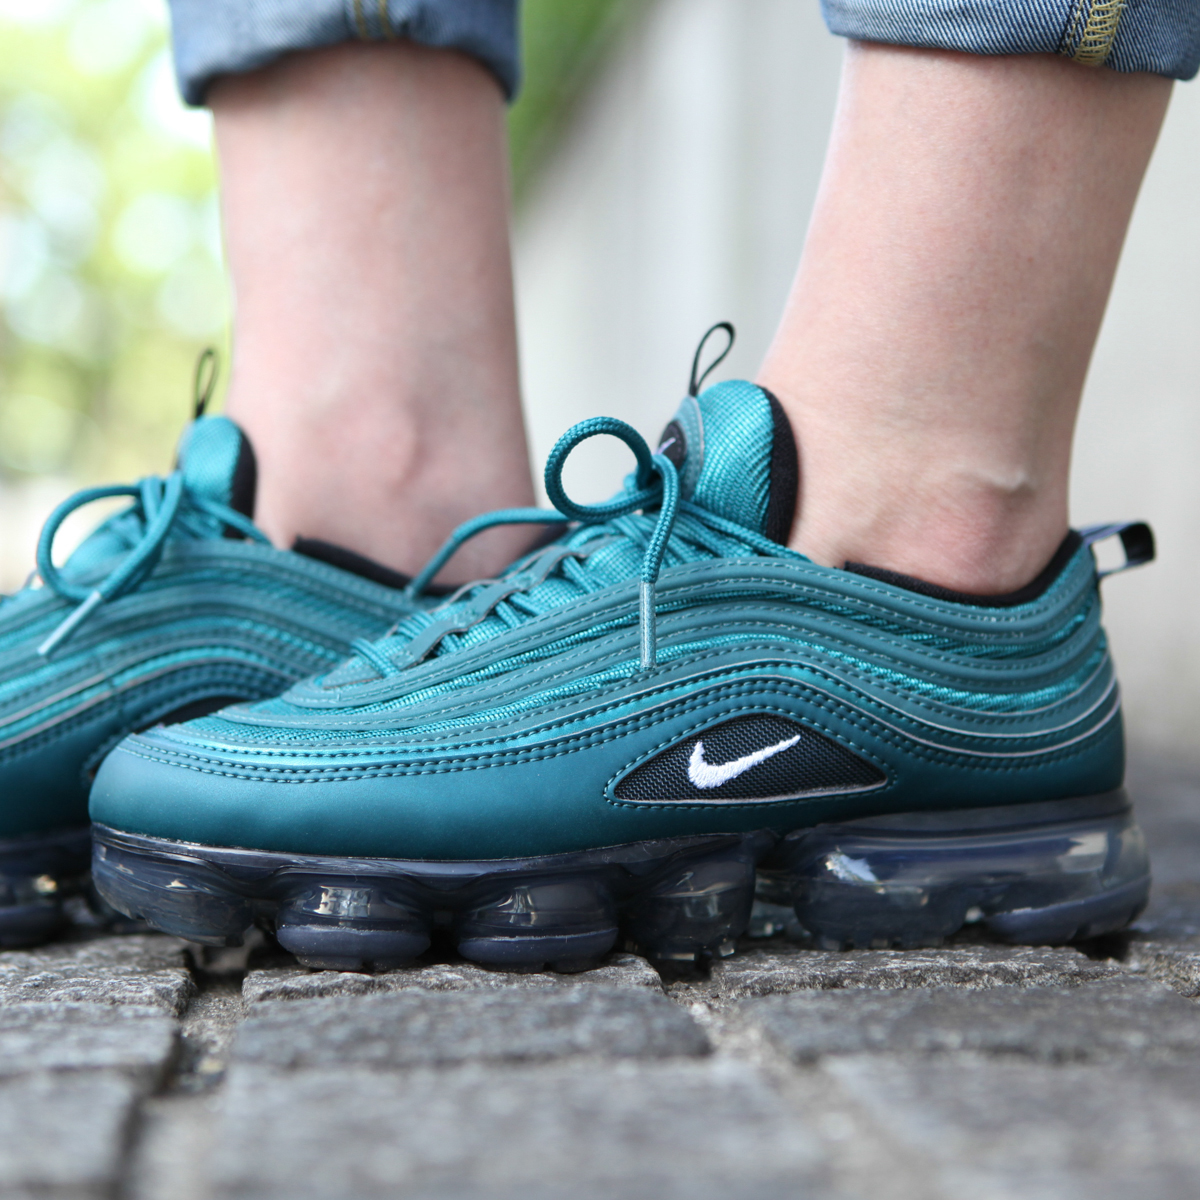 f70f3b202021cc NIKE W AIR VAPORMAX  97 (Nike women air vapor max 97) MTLC DARK  SEA WHITE-BLACK 18SU-S